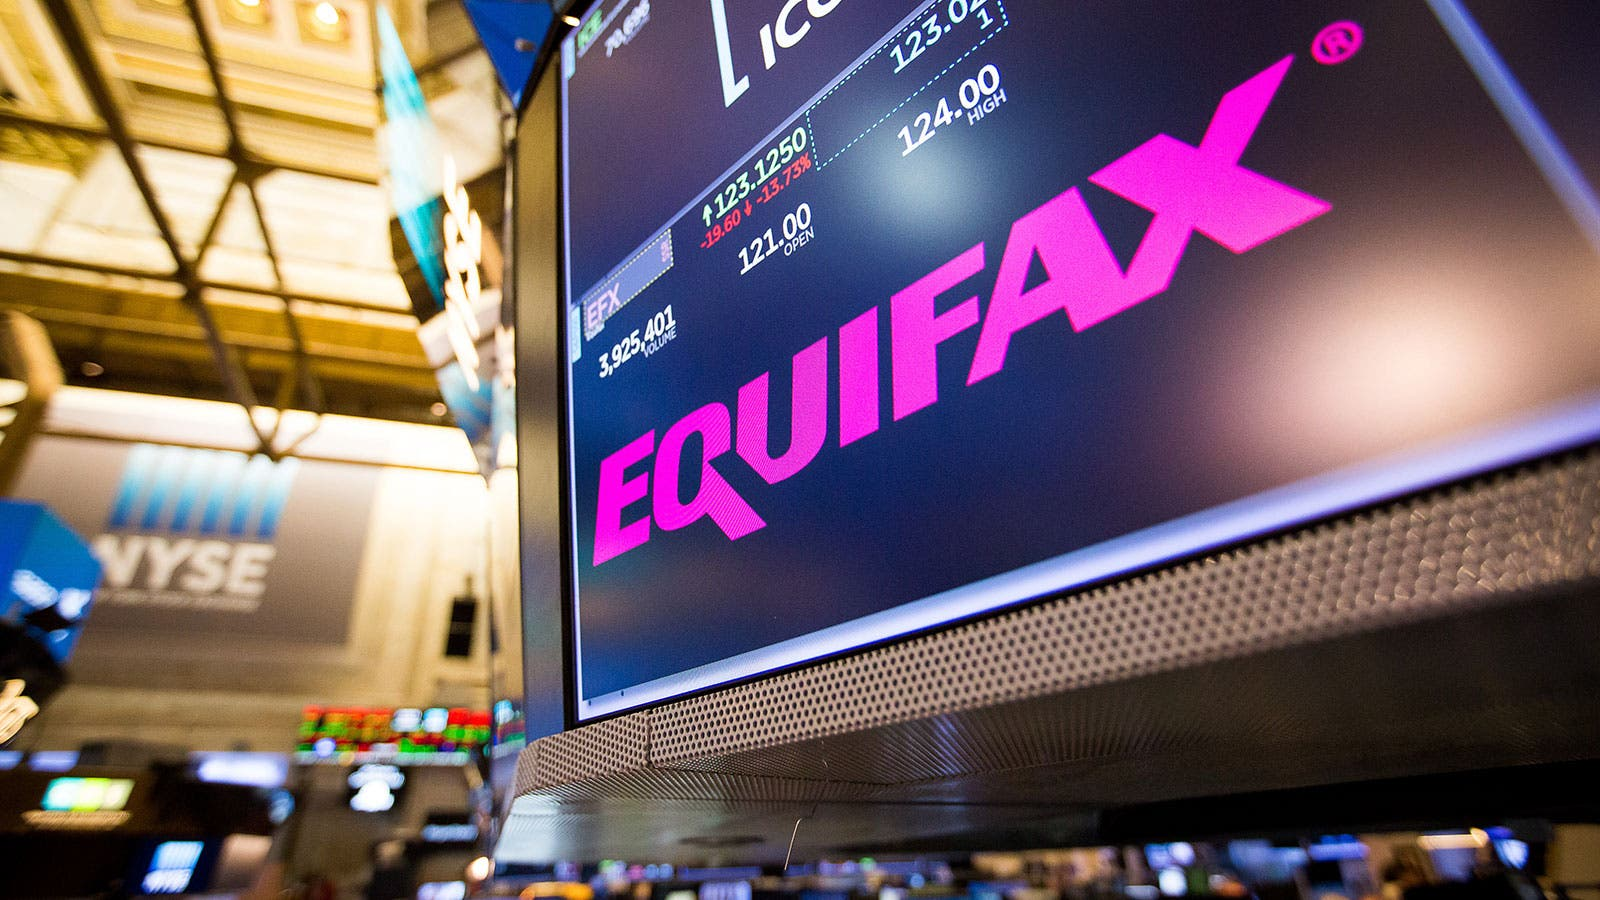 How To Freeze Your Credit After The Equifax Data Breach